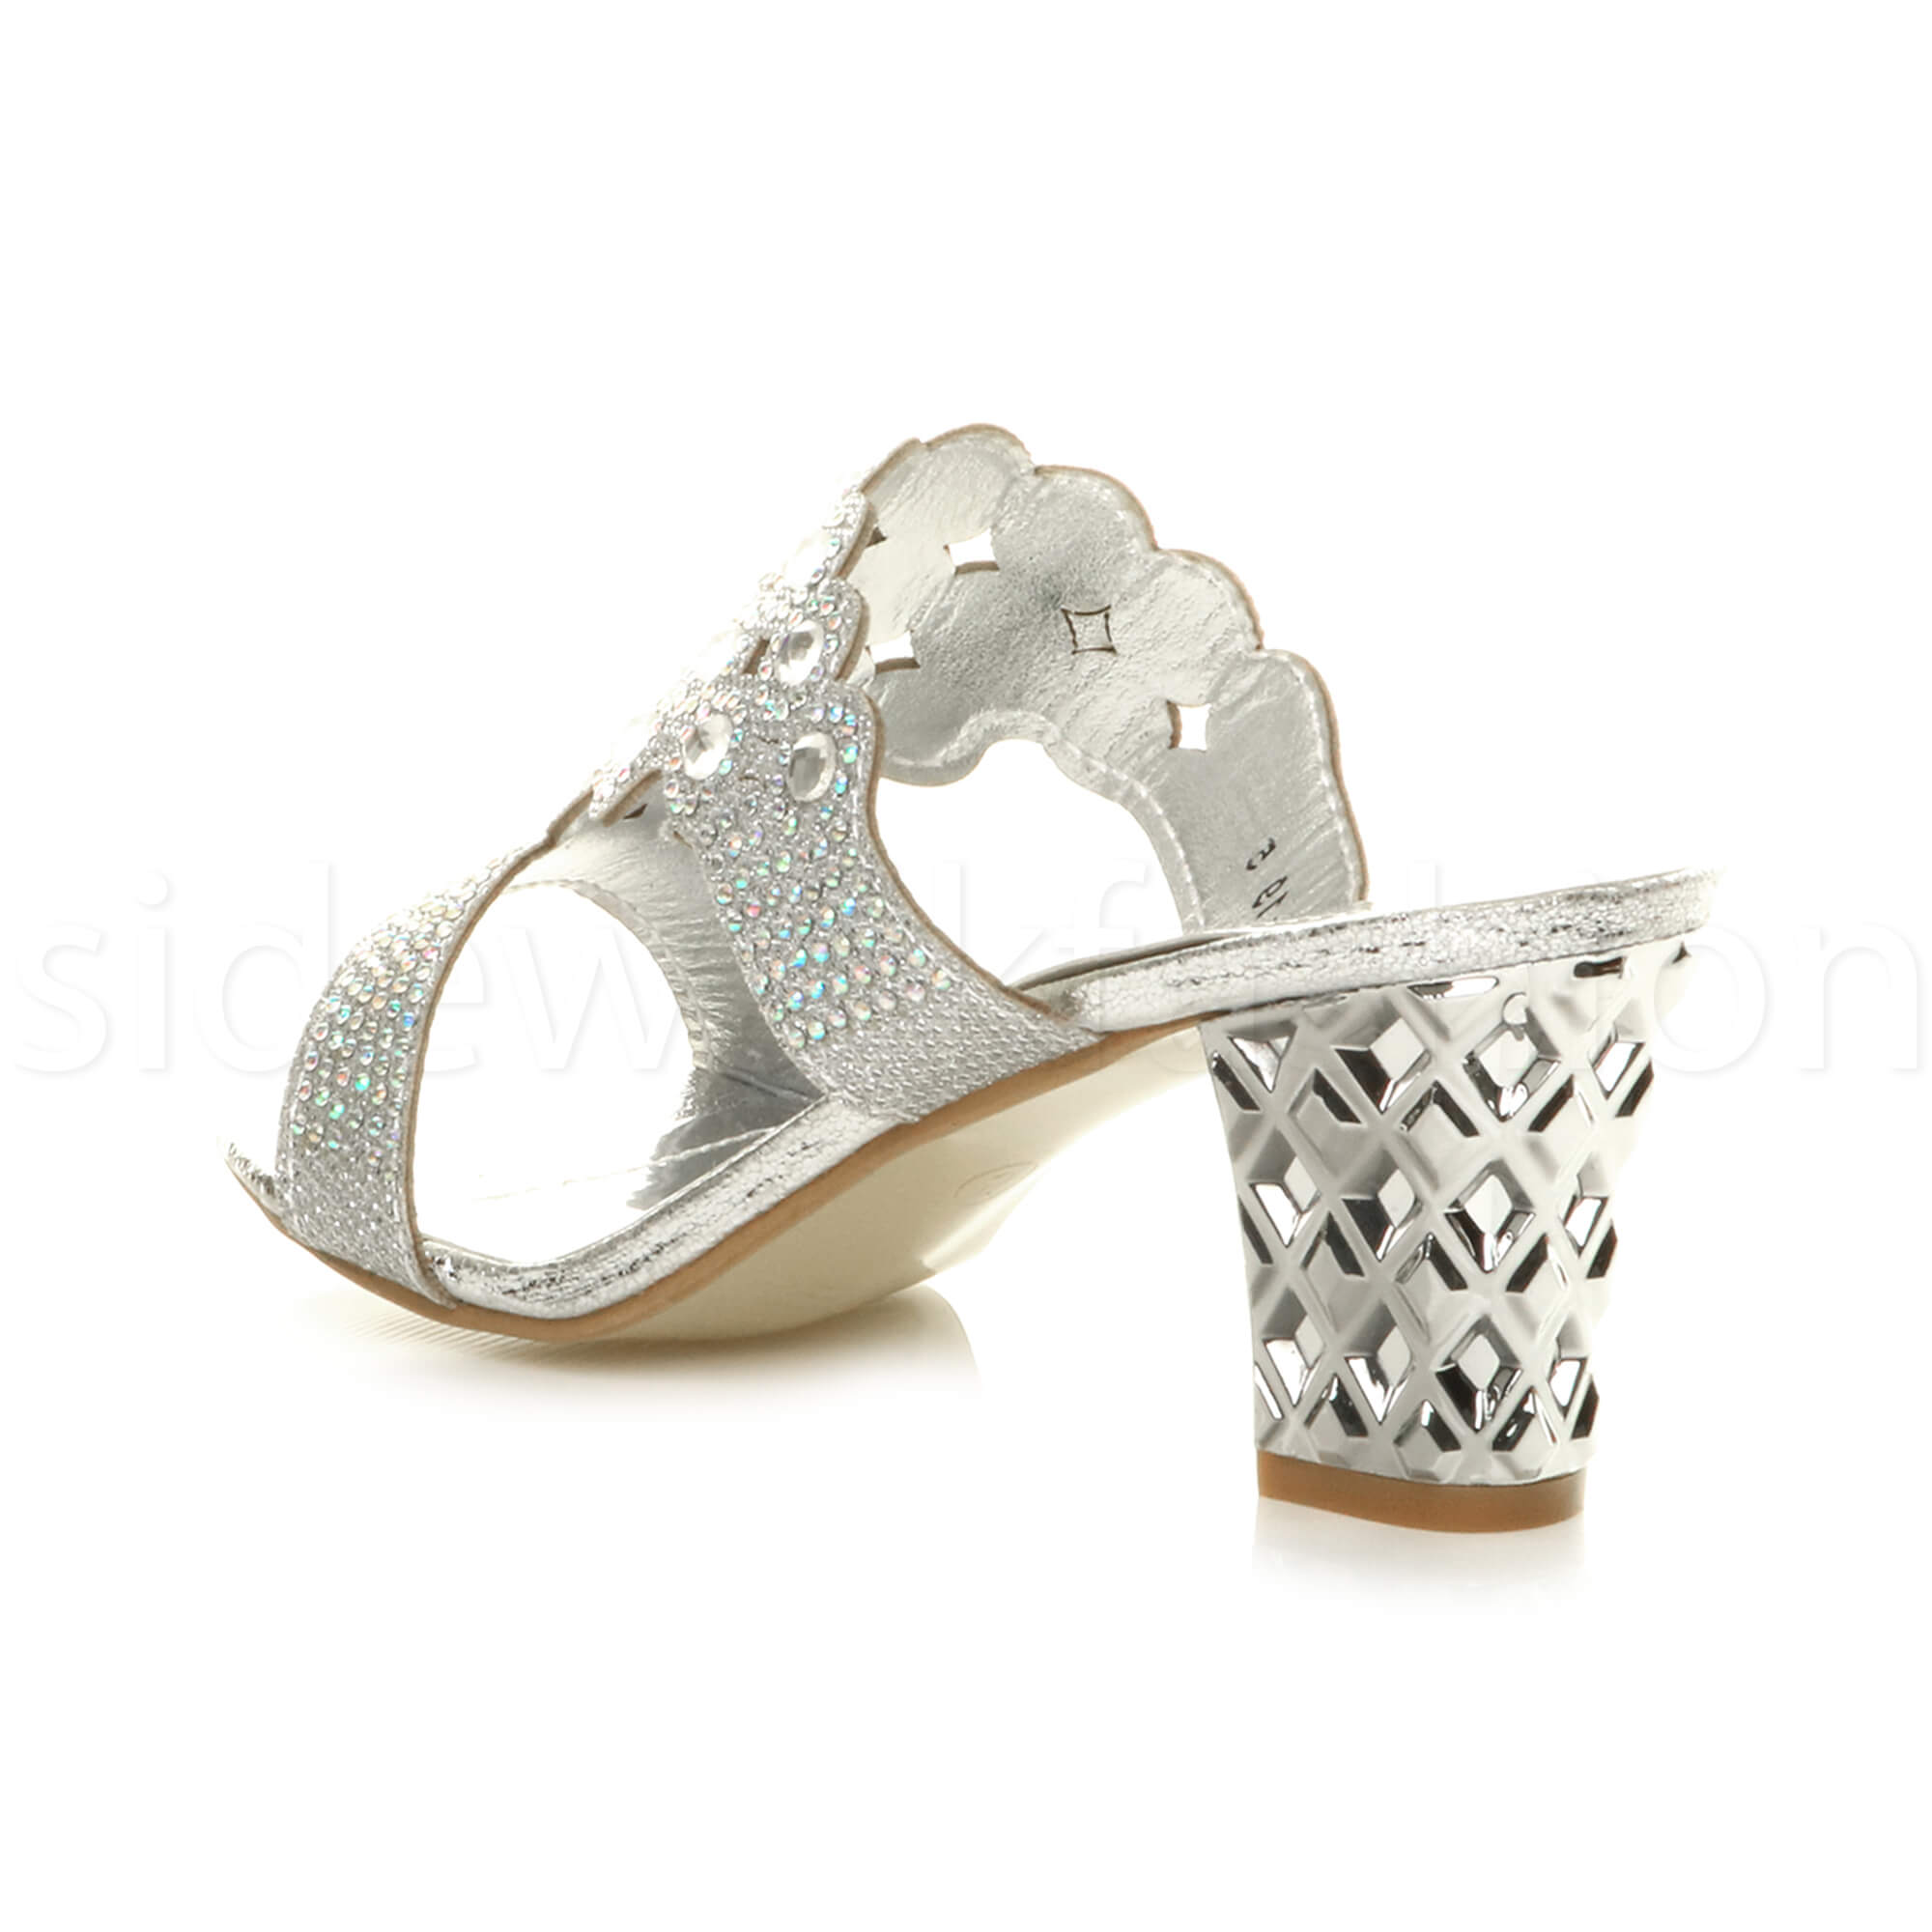 Womens-ladies-mid-heel-party-diamante-slip-on-strappy-mules-sandals-shoes-size thumbnail 15